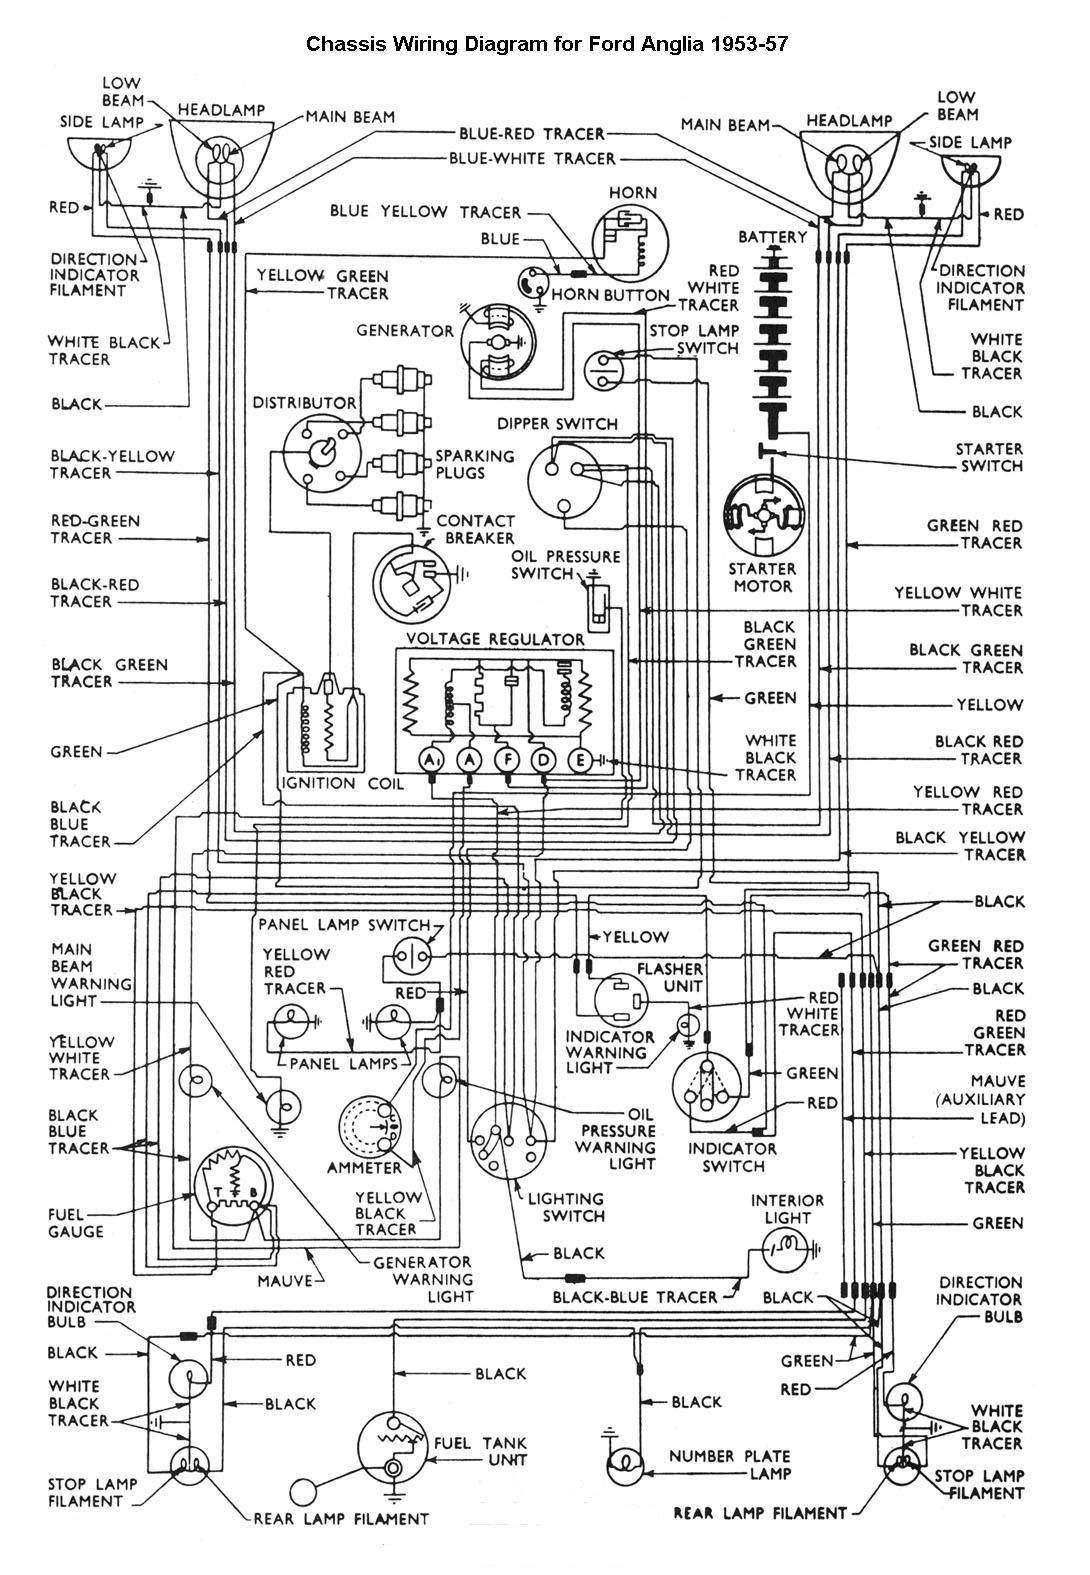 car wiring diagram cool ideas pinte rh pinterest com  wiring diagram vw bluetooth car kit